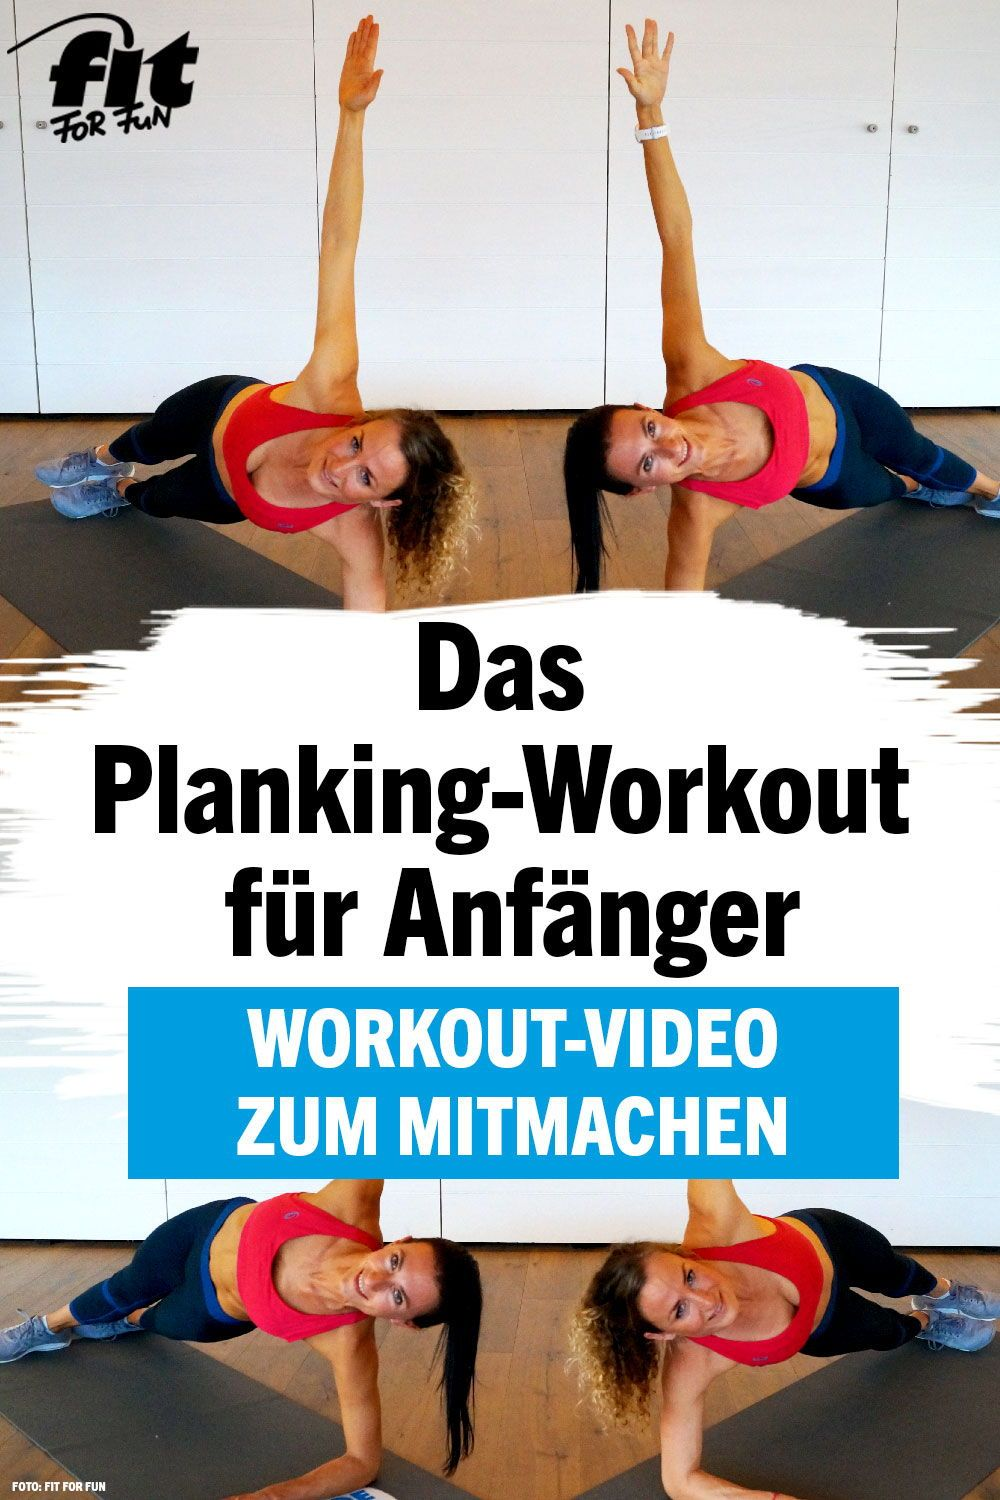 Planking-Workout: 9 Übungen für eine flachere Mitte - FIT FOR FUN